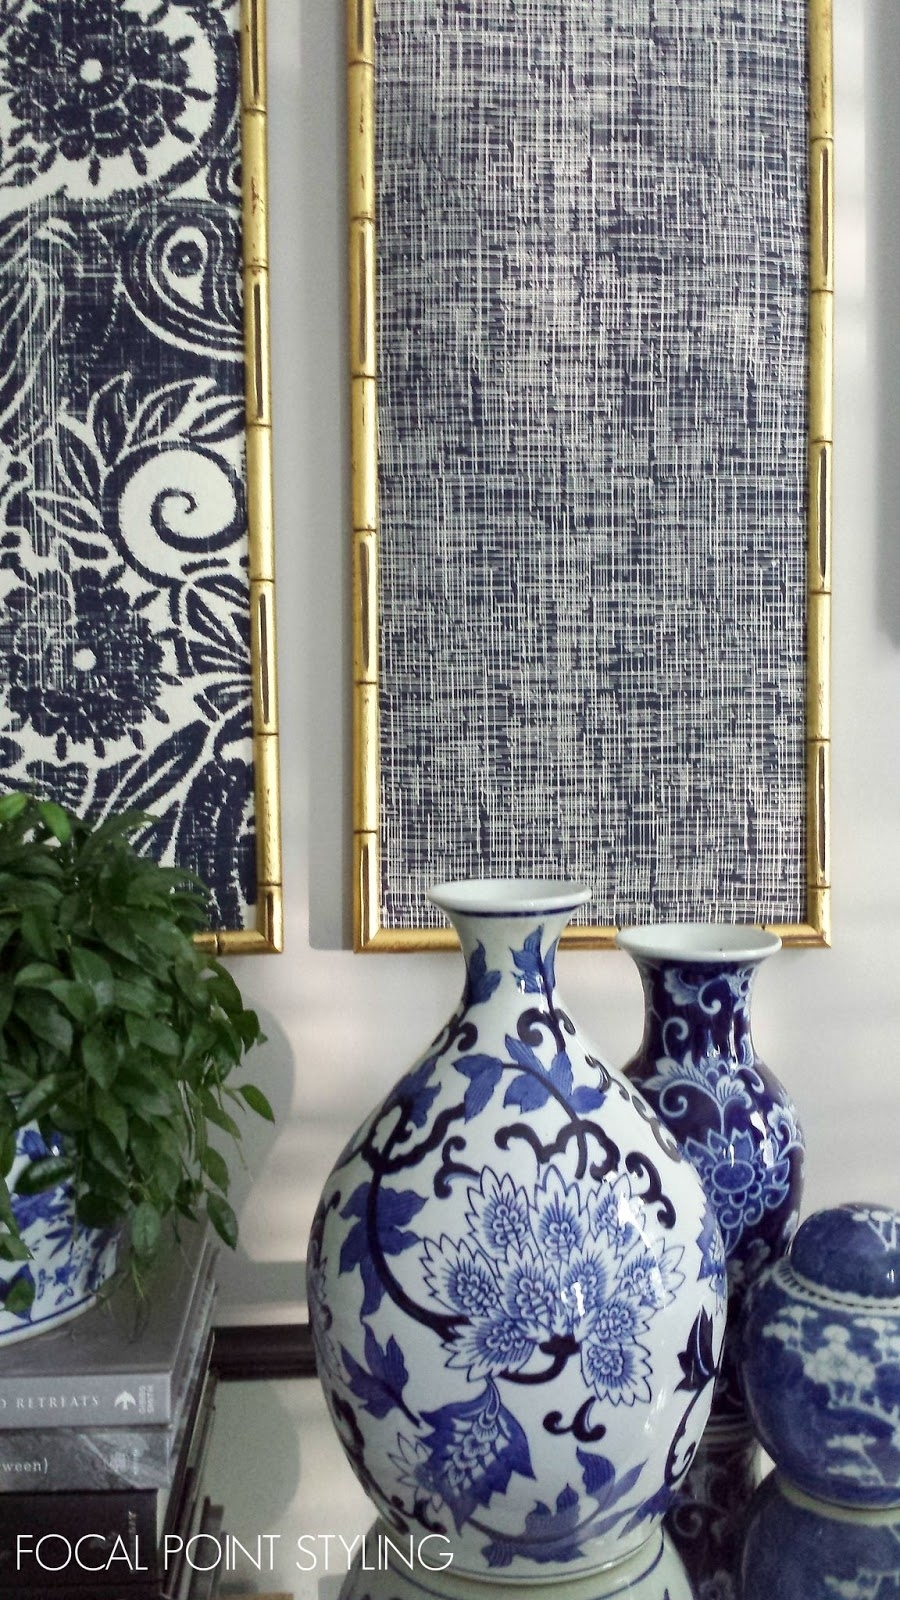 Focal Point Styling: Diy Indigo Wall Art With Framed Fabric In 2018 High End Fabric Wall Art (View 7 of 15)